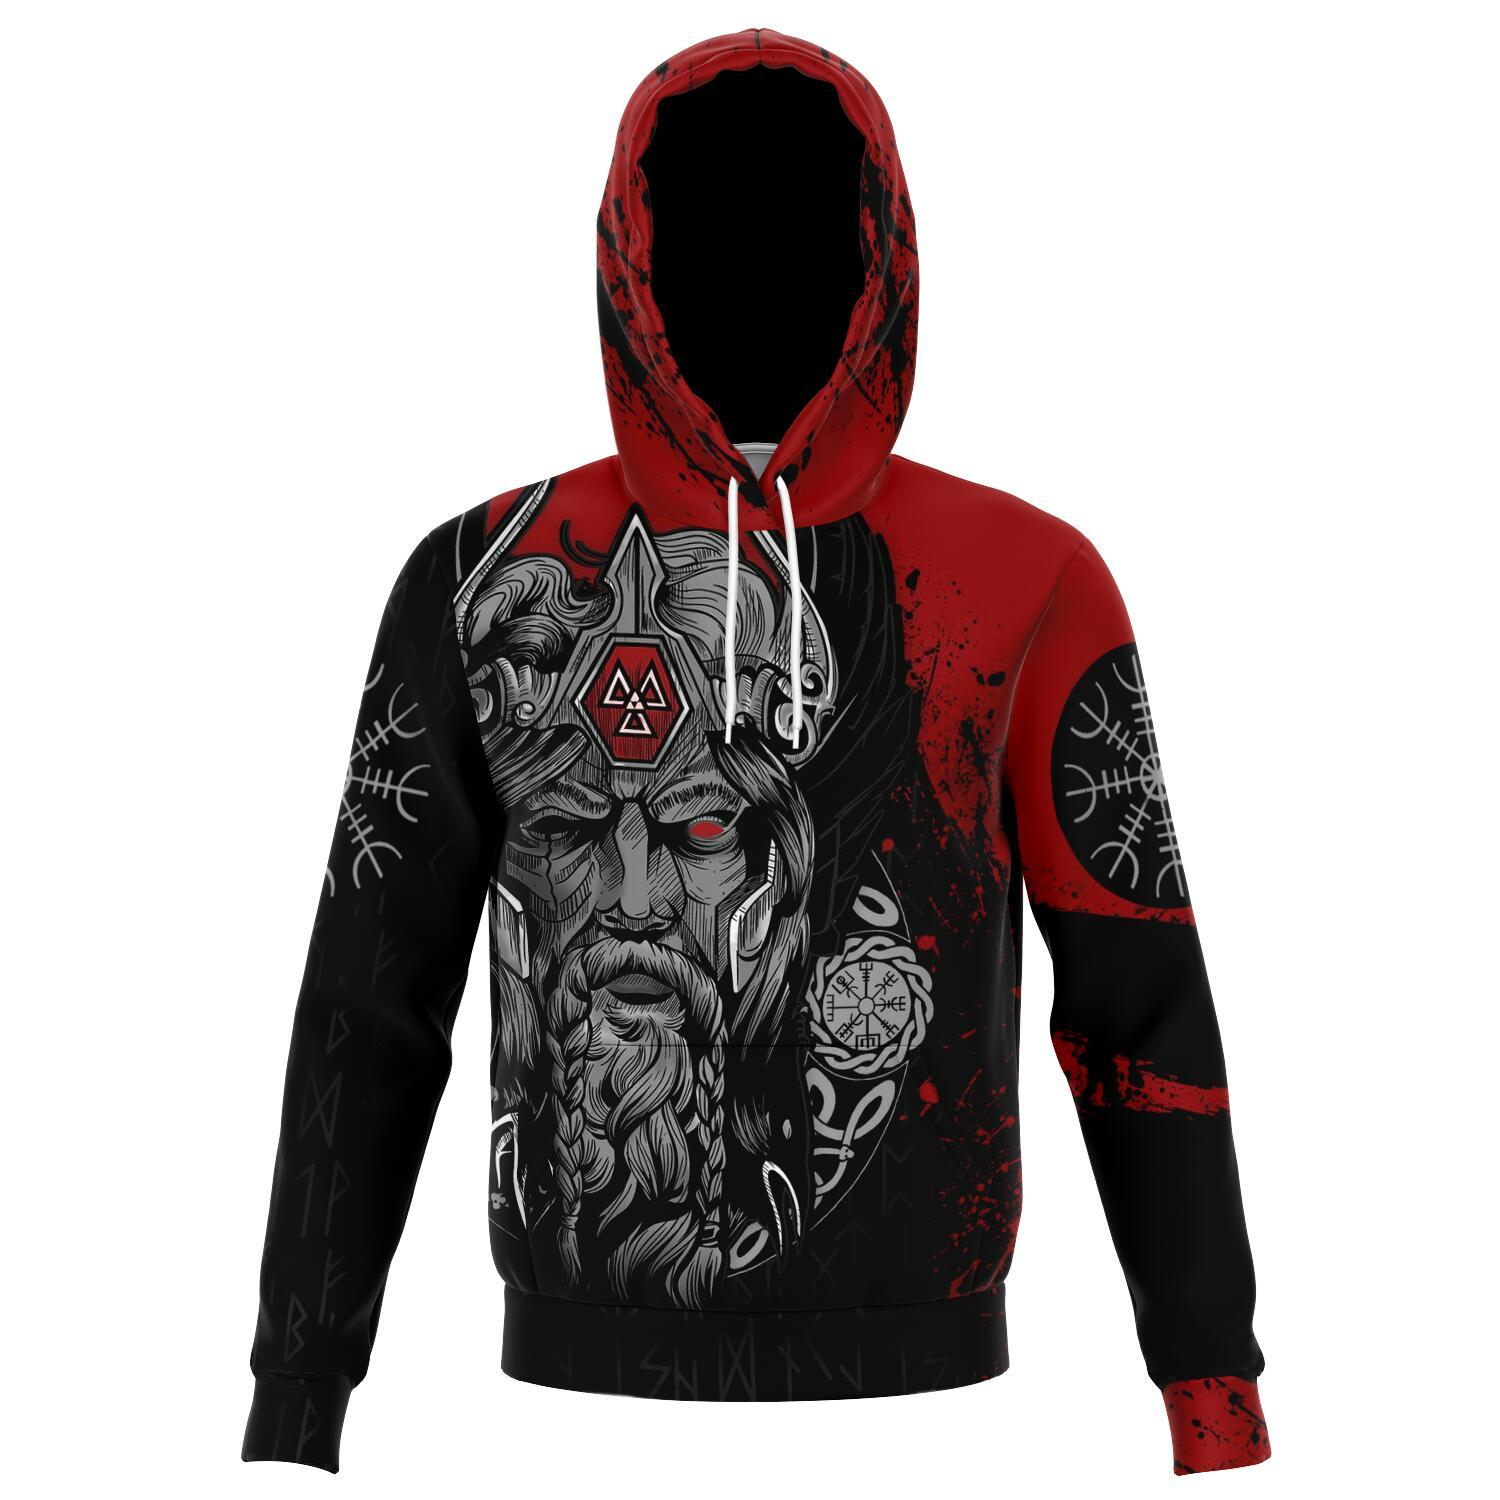 Norse God Odin Red Unisex Viking Hoodie